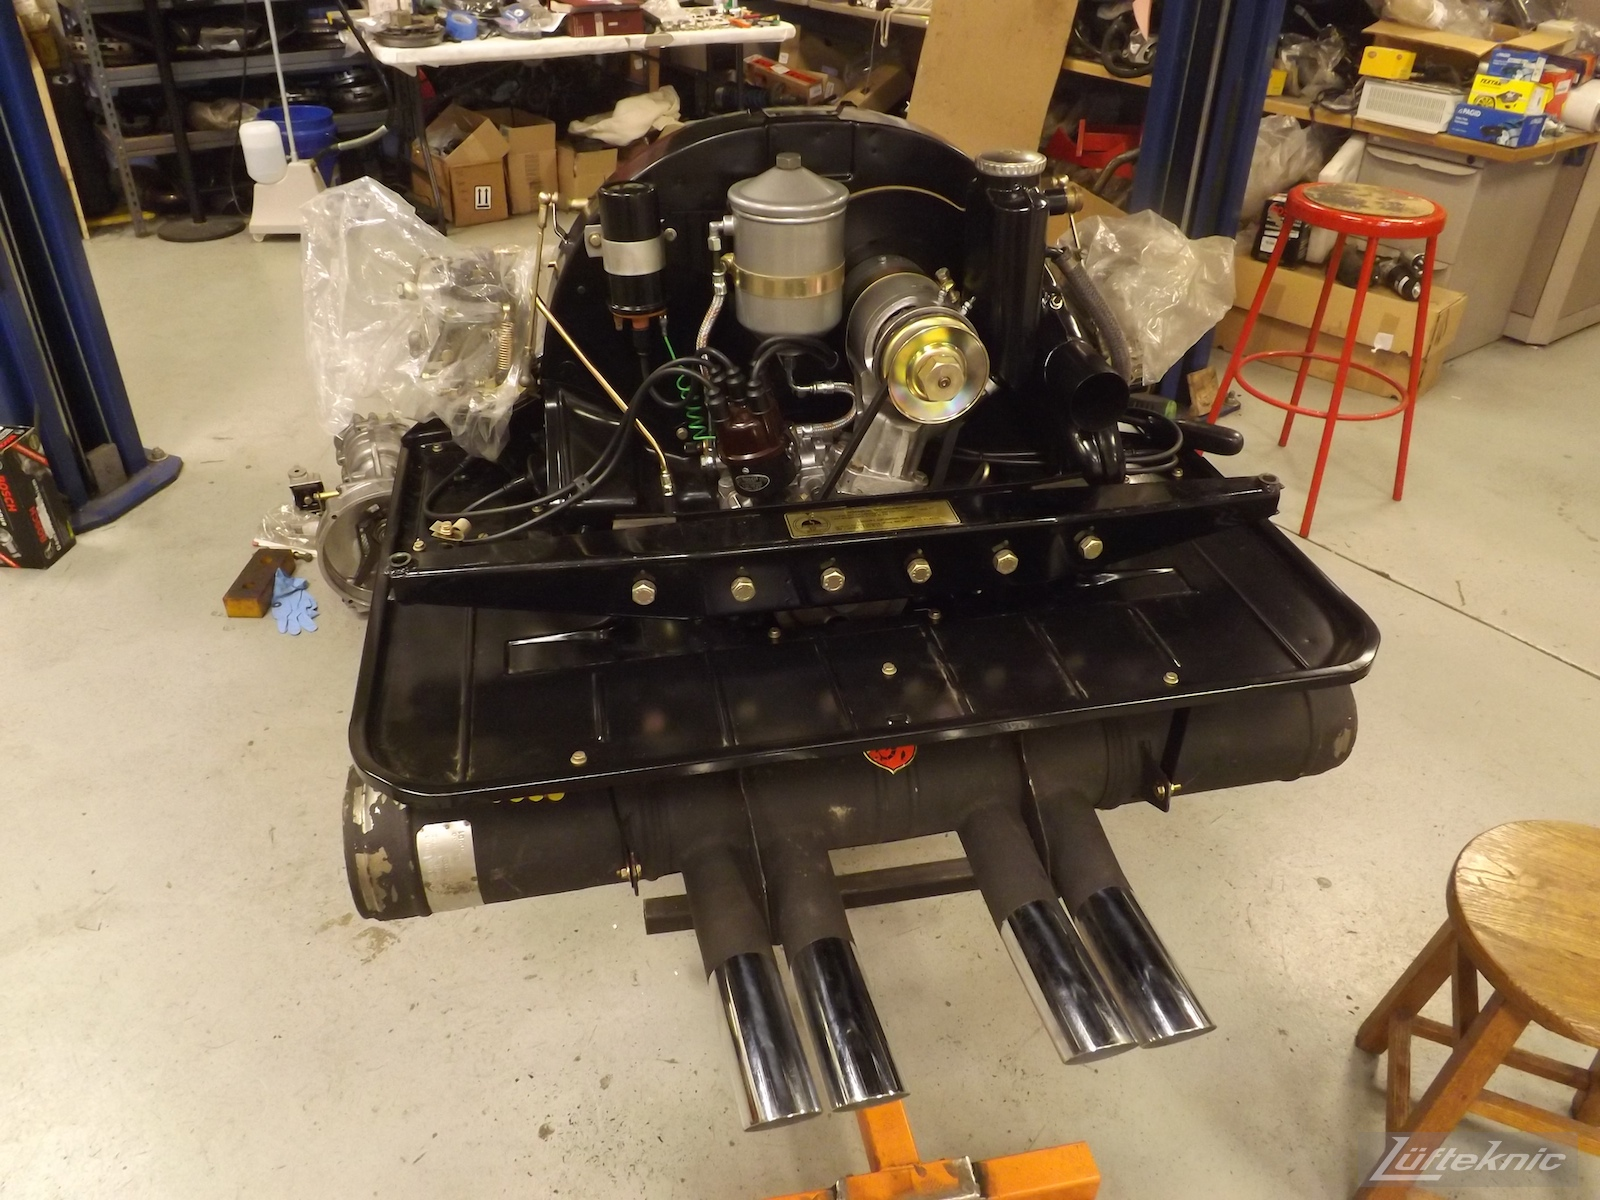 Complete engine with tins ready for install for an Irish Green Porsche 912 undergoing restoration at Lufteknic.